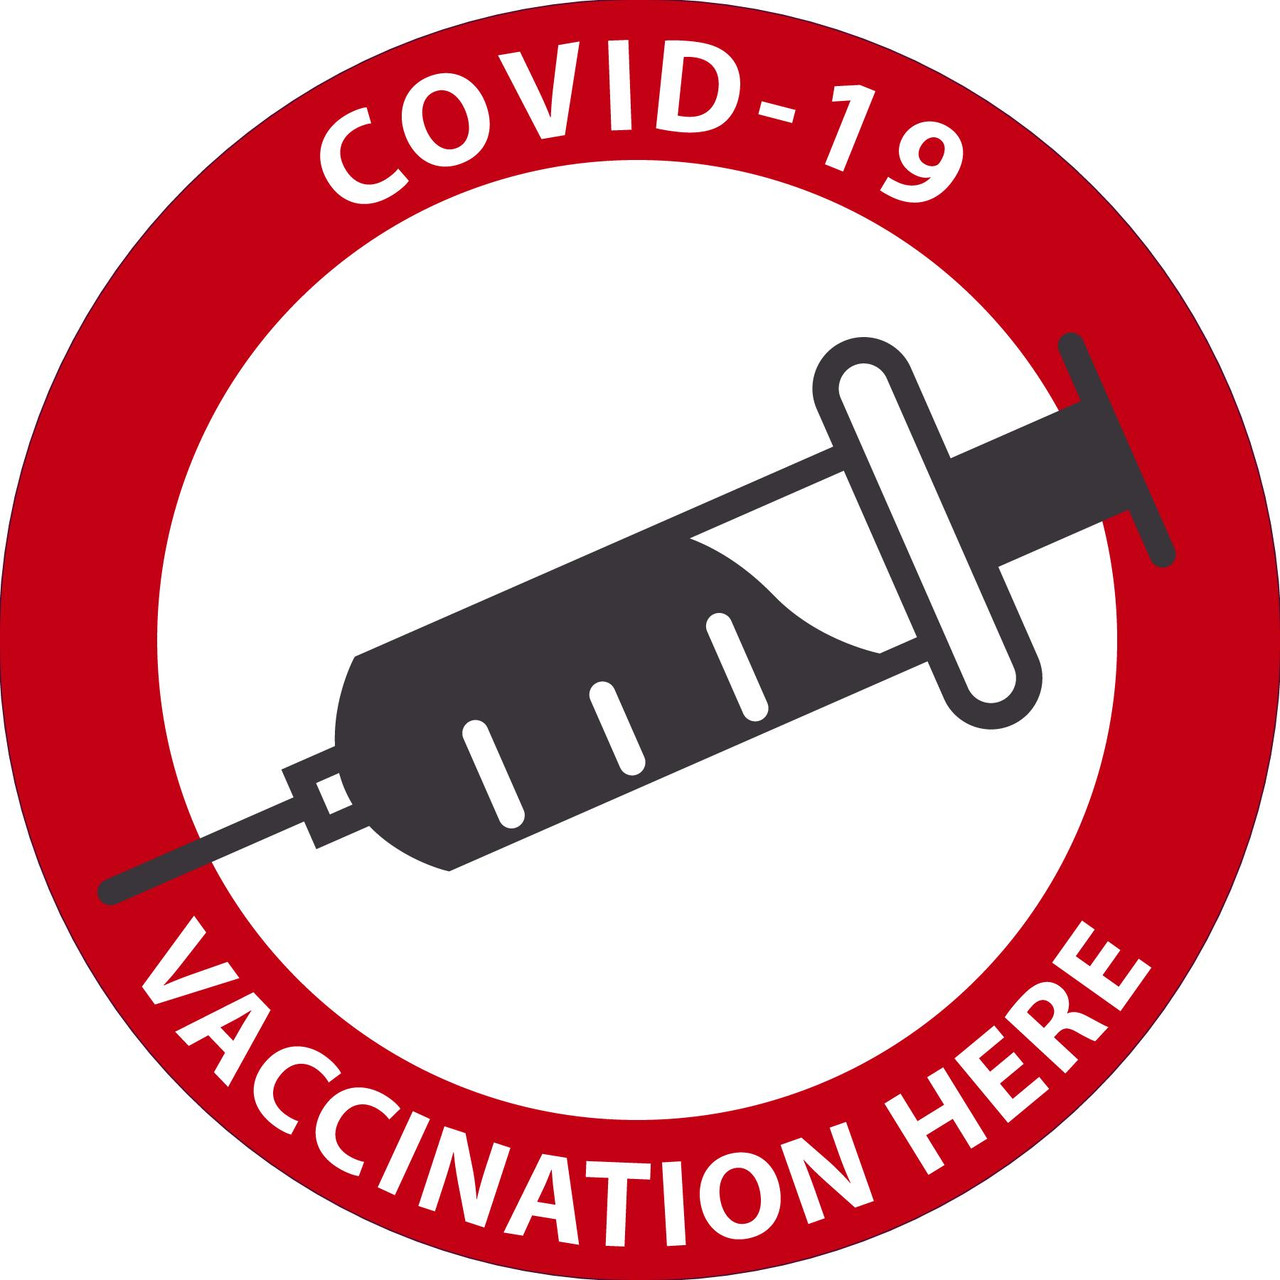 """Facility Label, Covid-19 Vaccinations Here, 6"""" x 6"""", Pressure-sensitive Adhesive, 5/pack"""